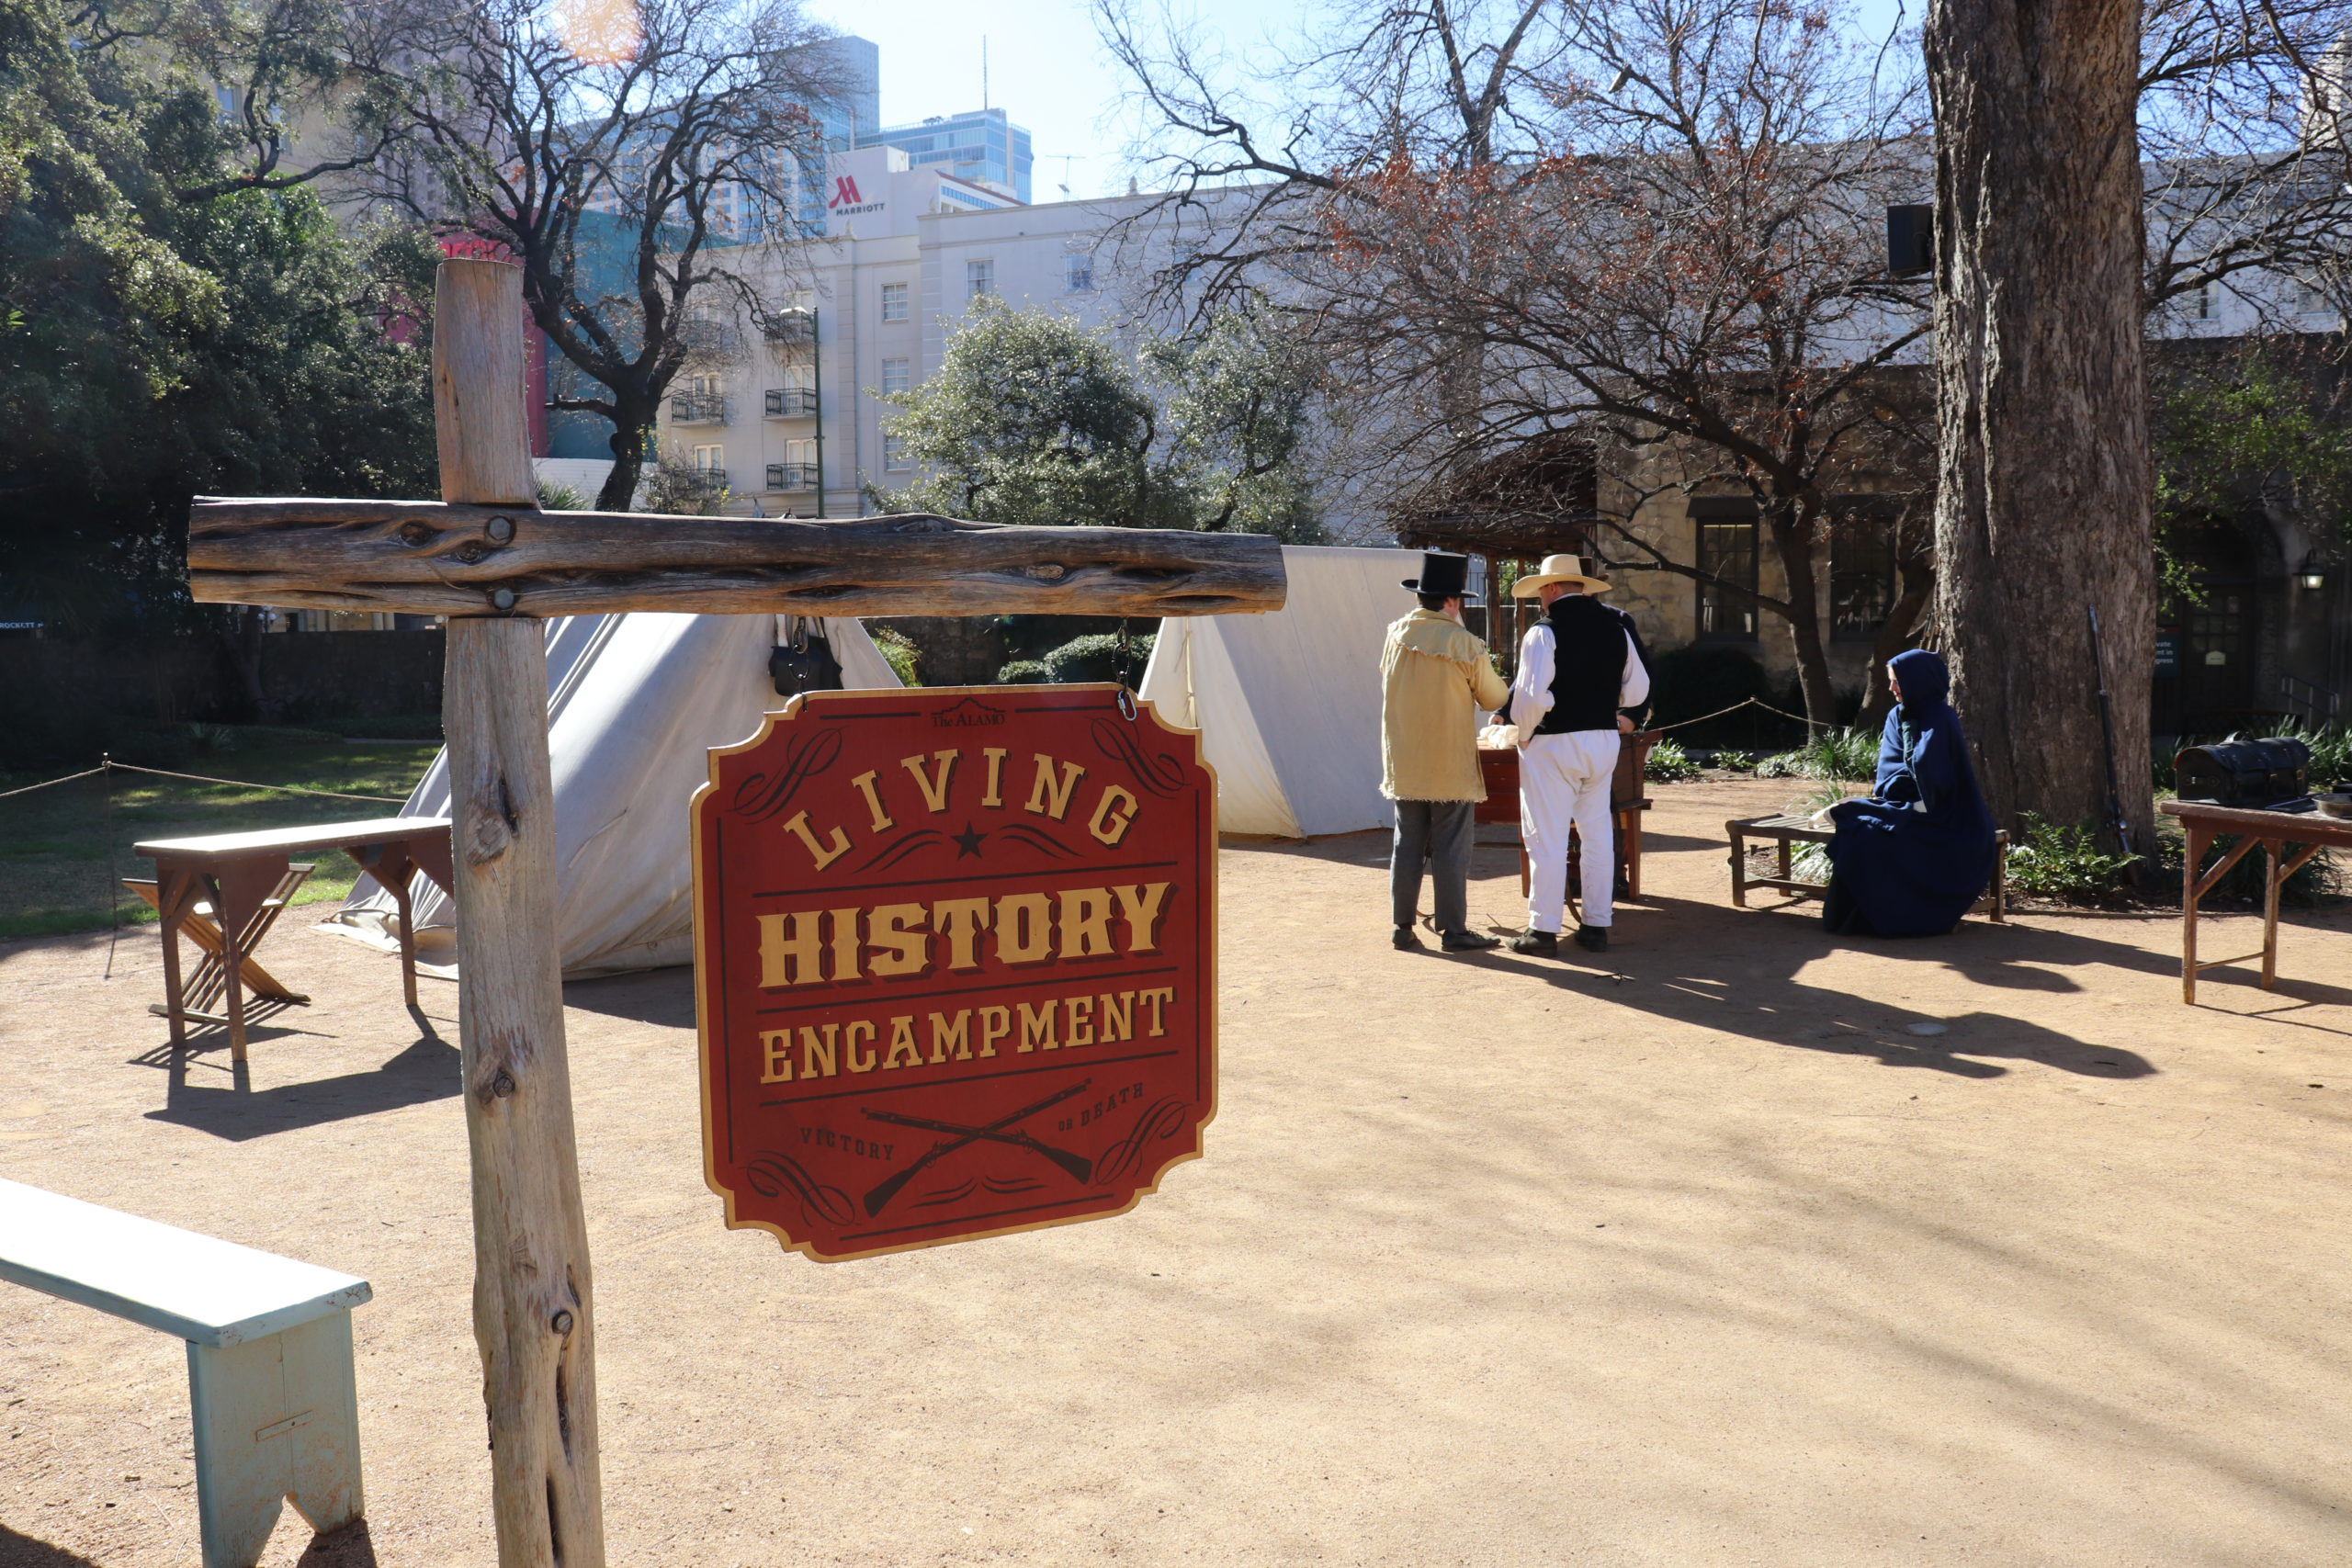 San Antonio: 5 Free Things To See During A Visit